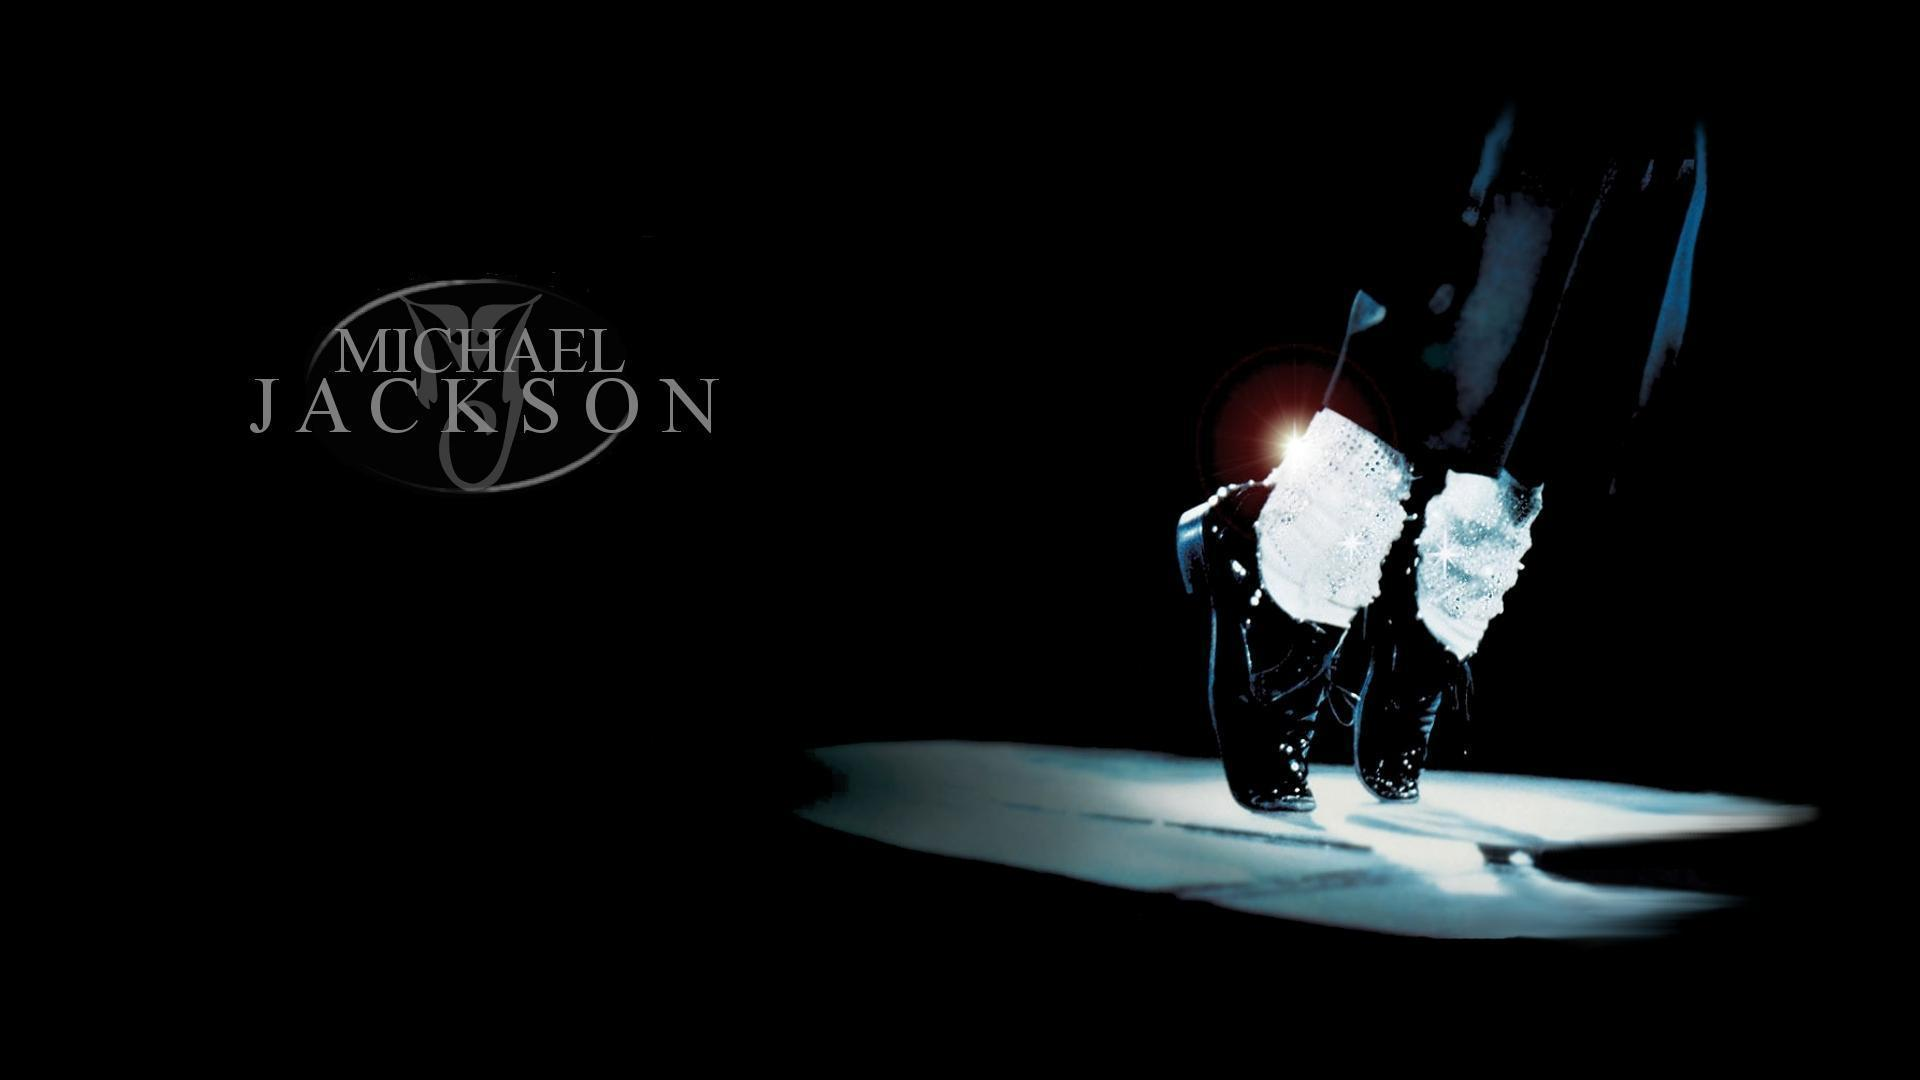 MJ - Michael Jackson Wallpaper (8494753) - Fanpop